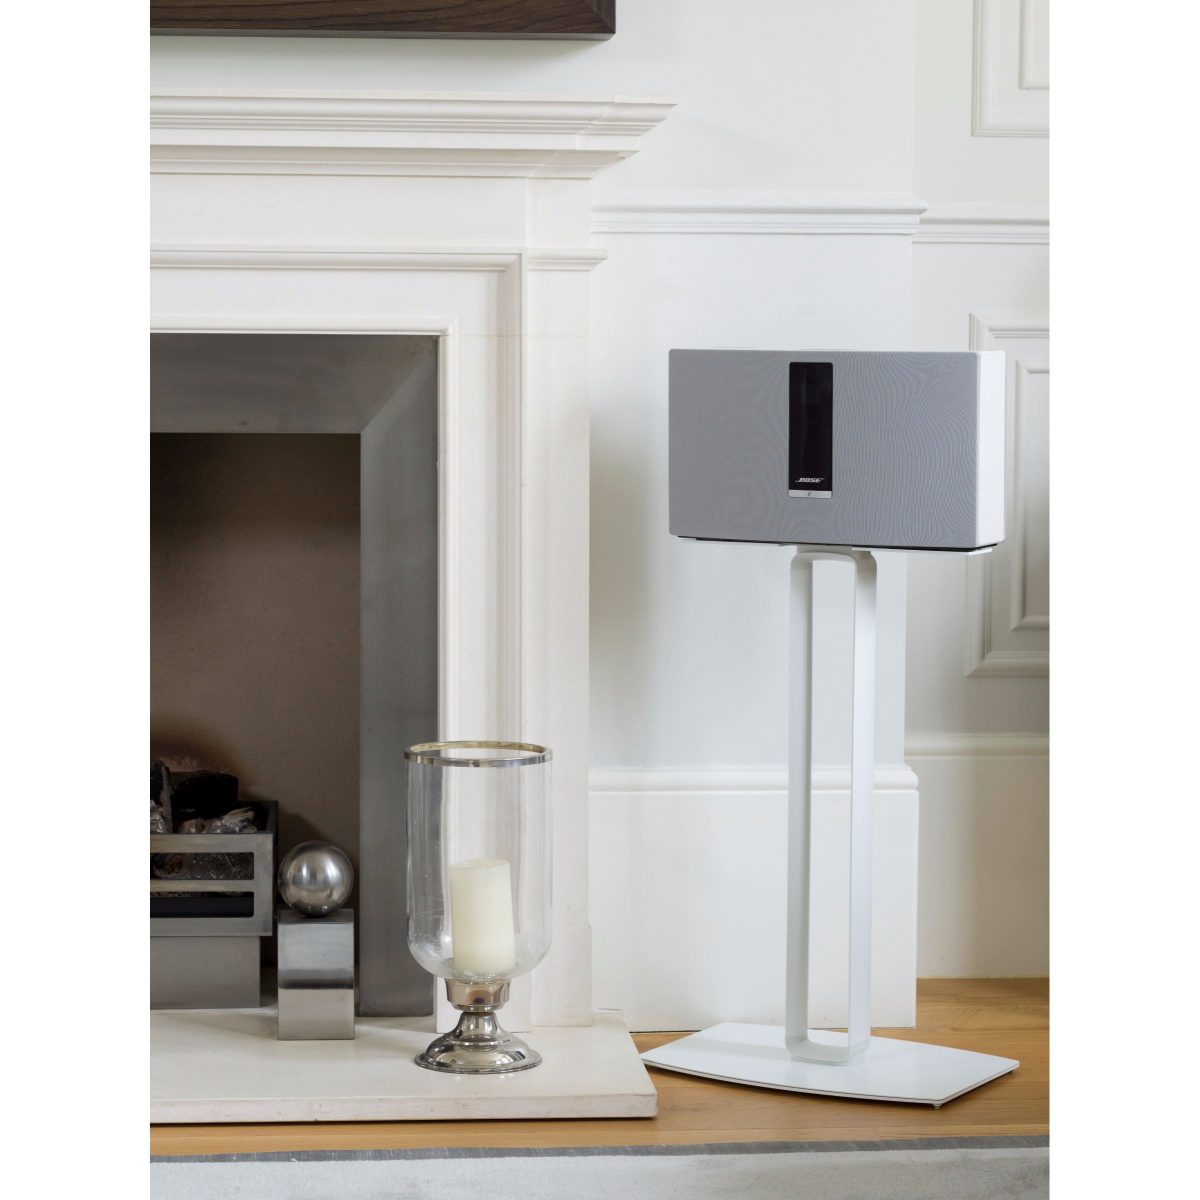 Bose SoundTouch 30 Standaard wit 12